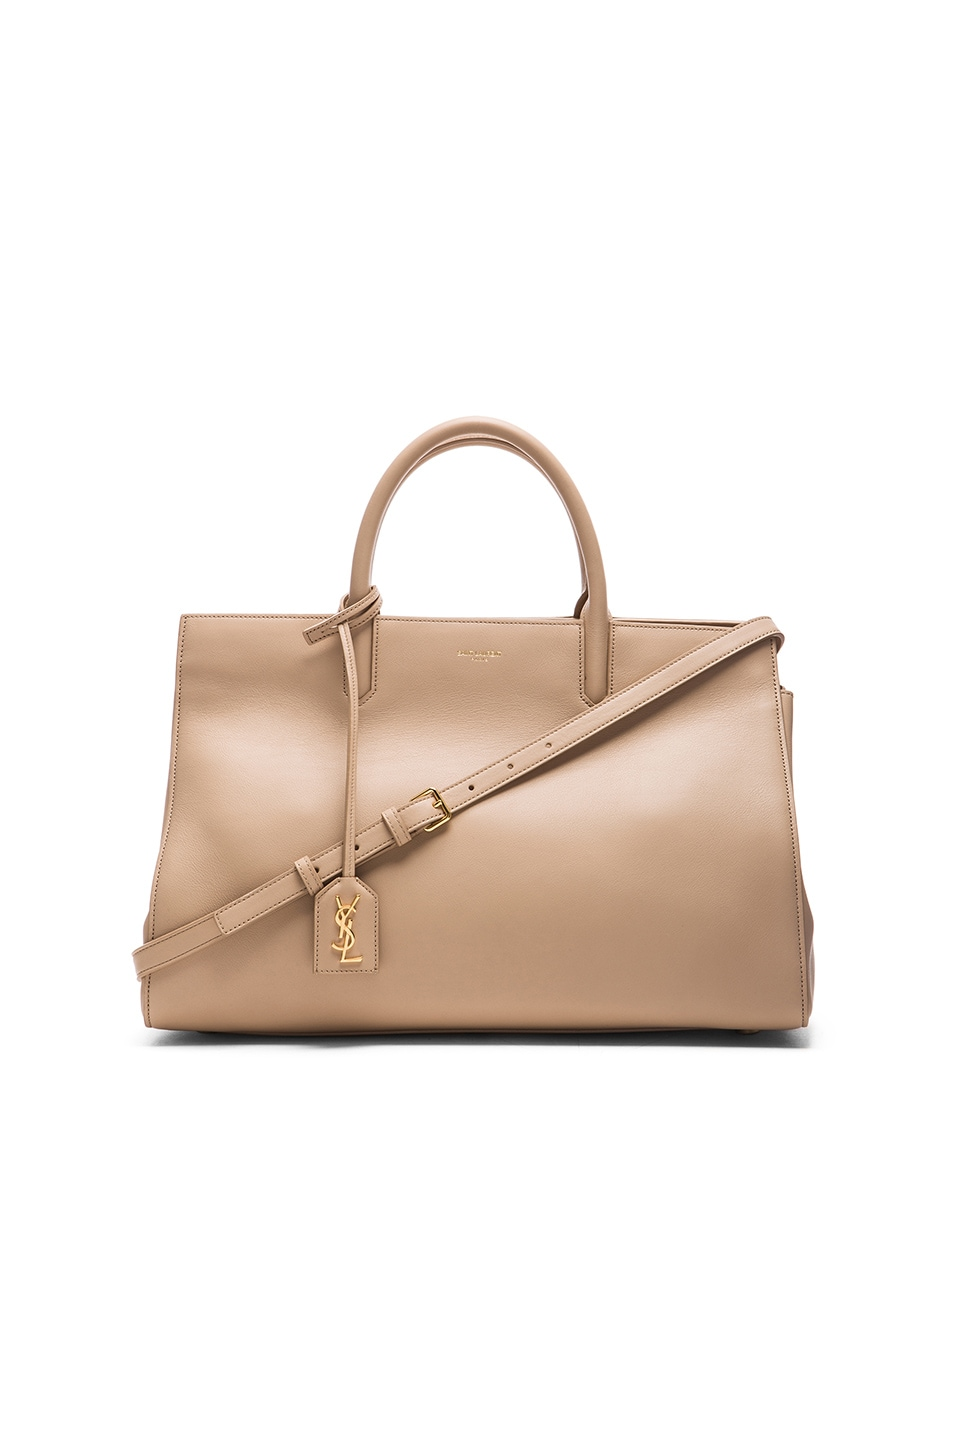 Small Cabas Rive Gauche Bag In Beige Grained Leather